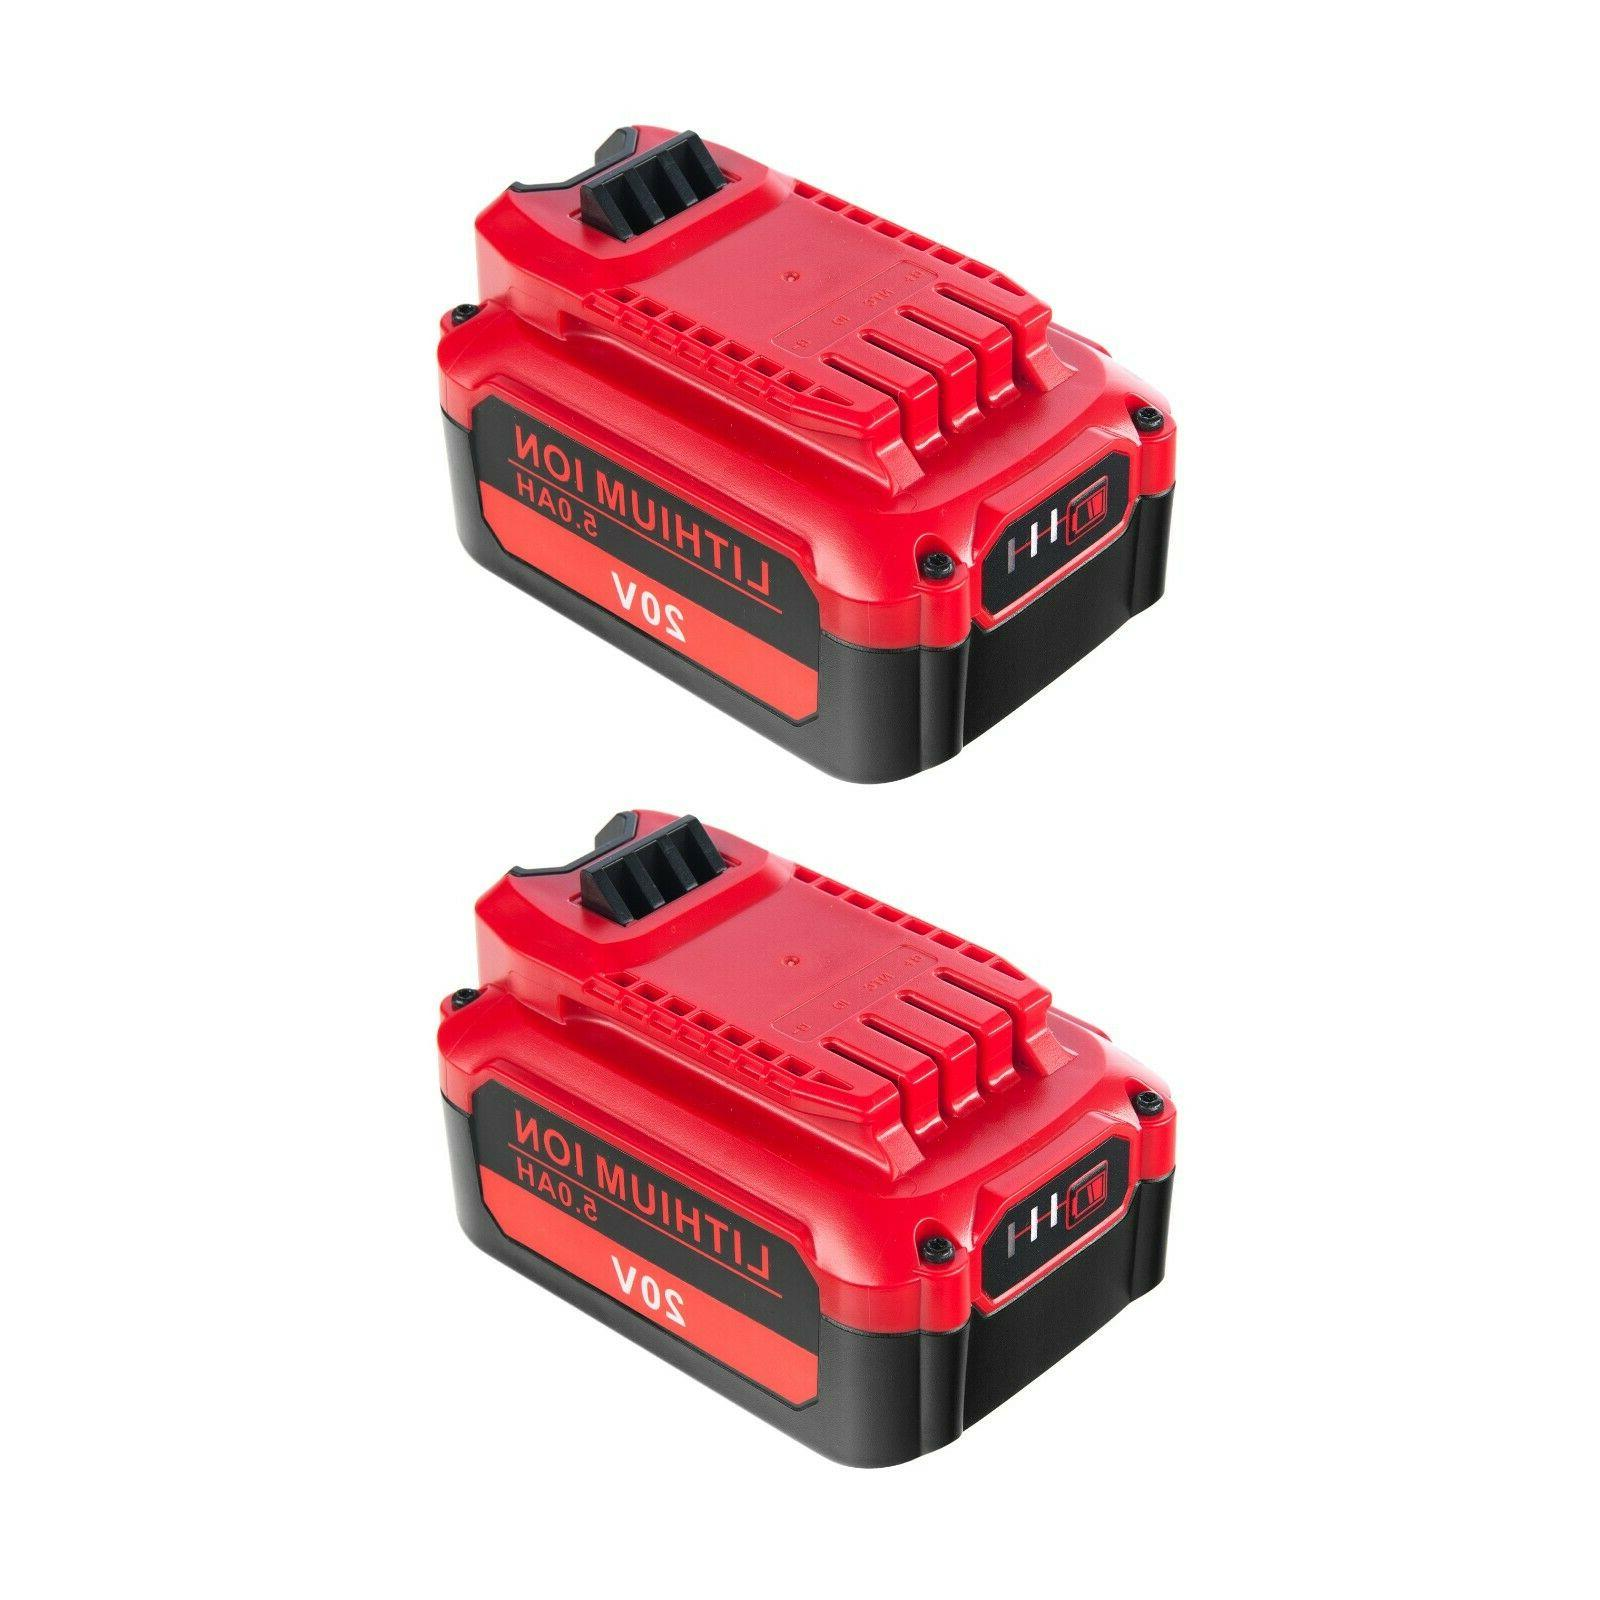 【Upgrade】2 Pack V20 for 20V Battery CMCB204